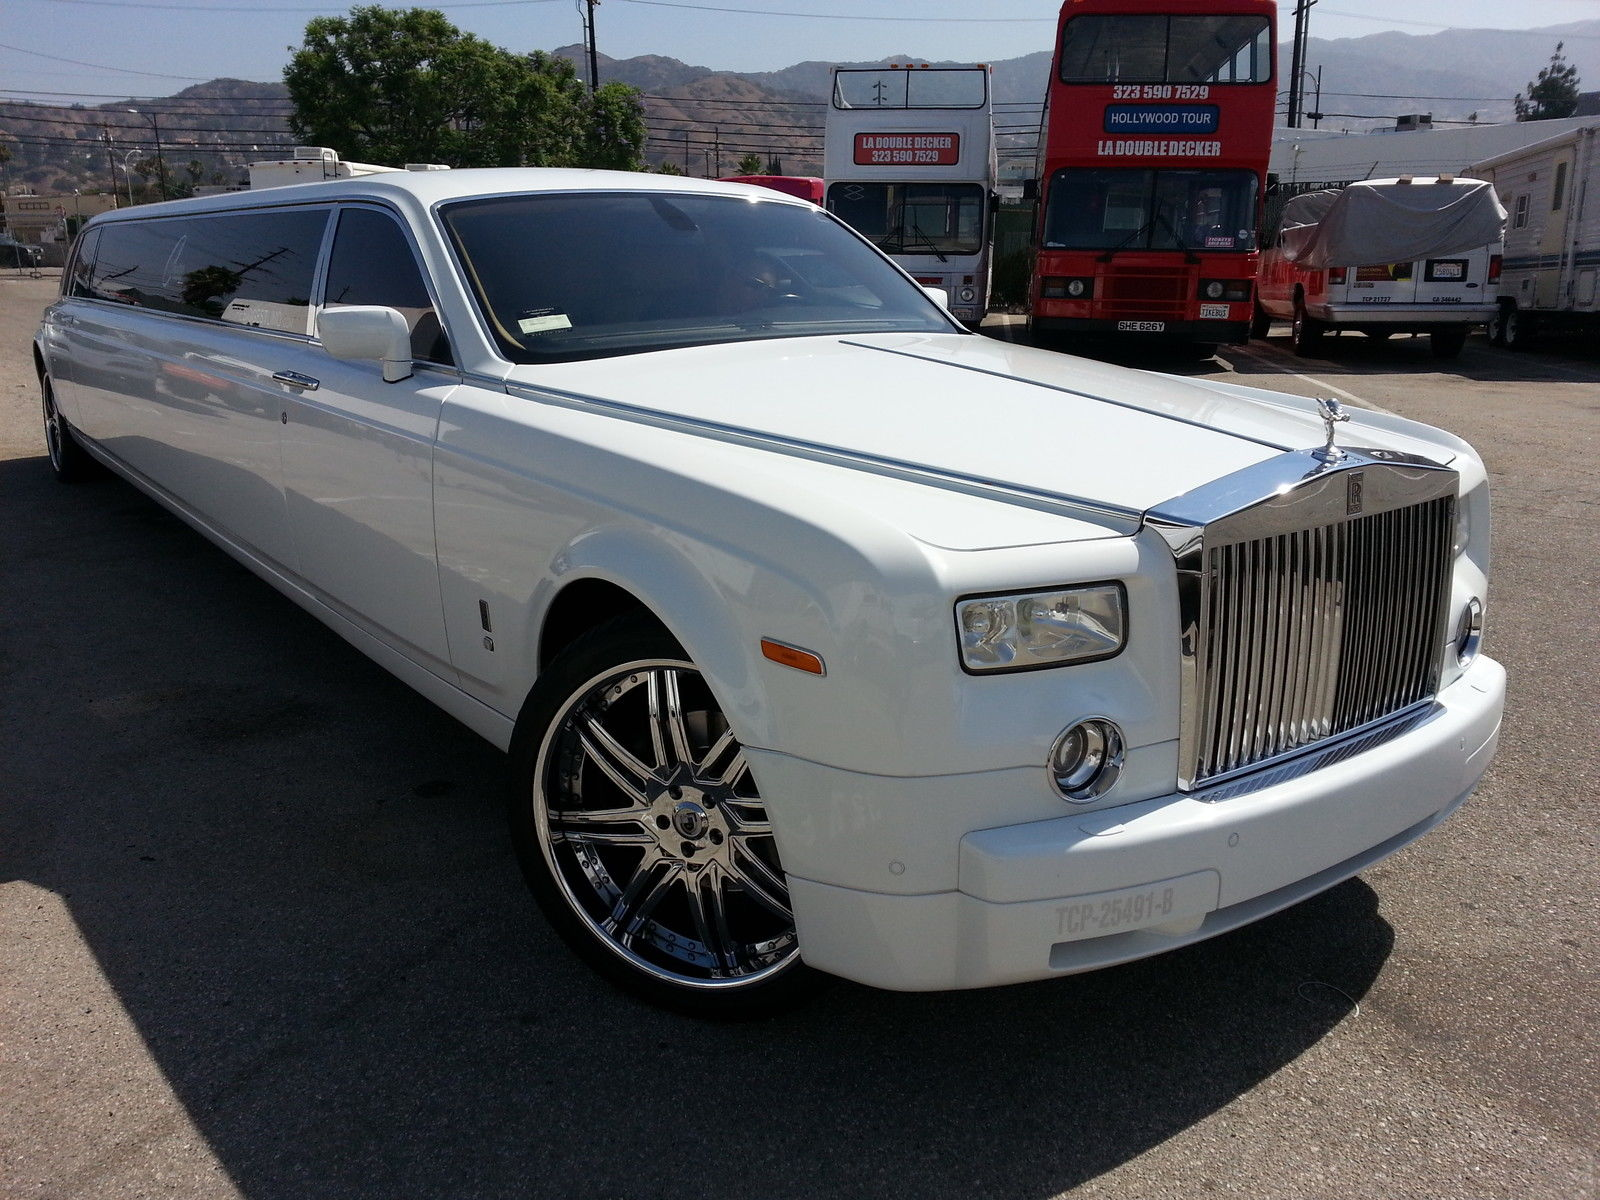 2004 Rolls Royce Phantom Limousine For Sale